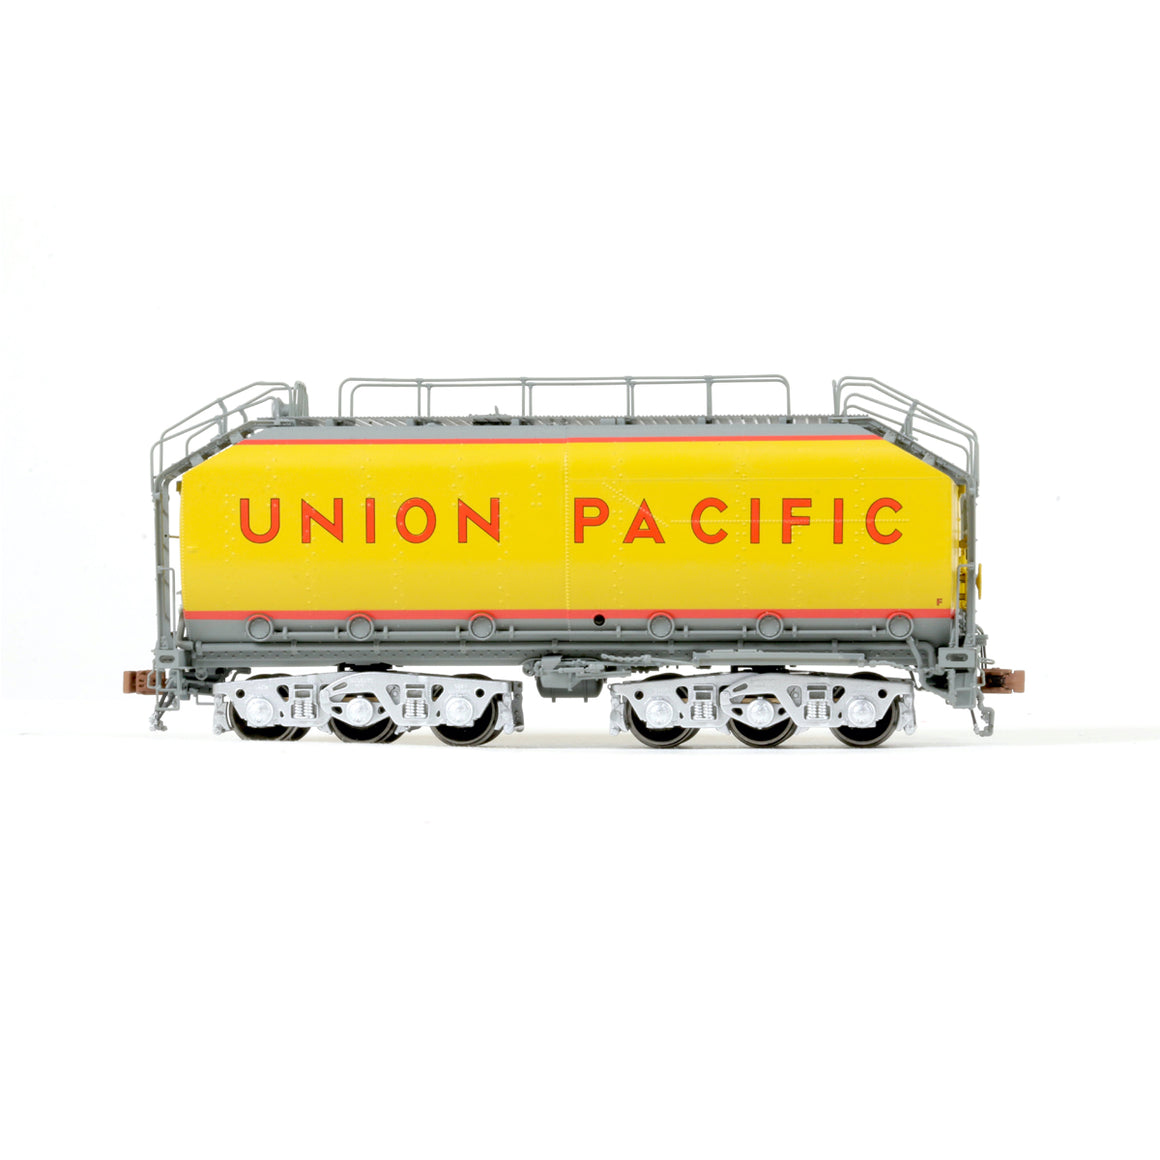 HO Scale: Rivet Counter: Union Pacific 23C Fuel Tender - No Number